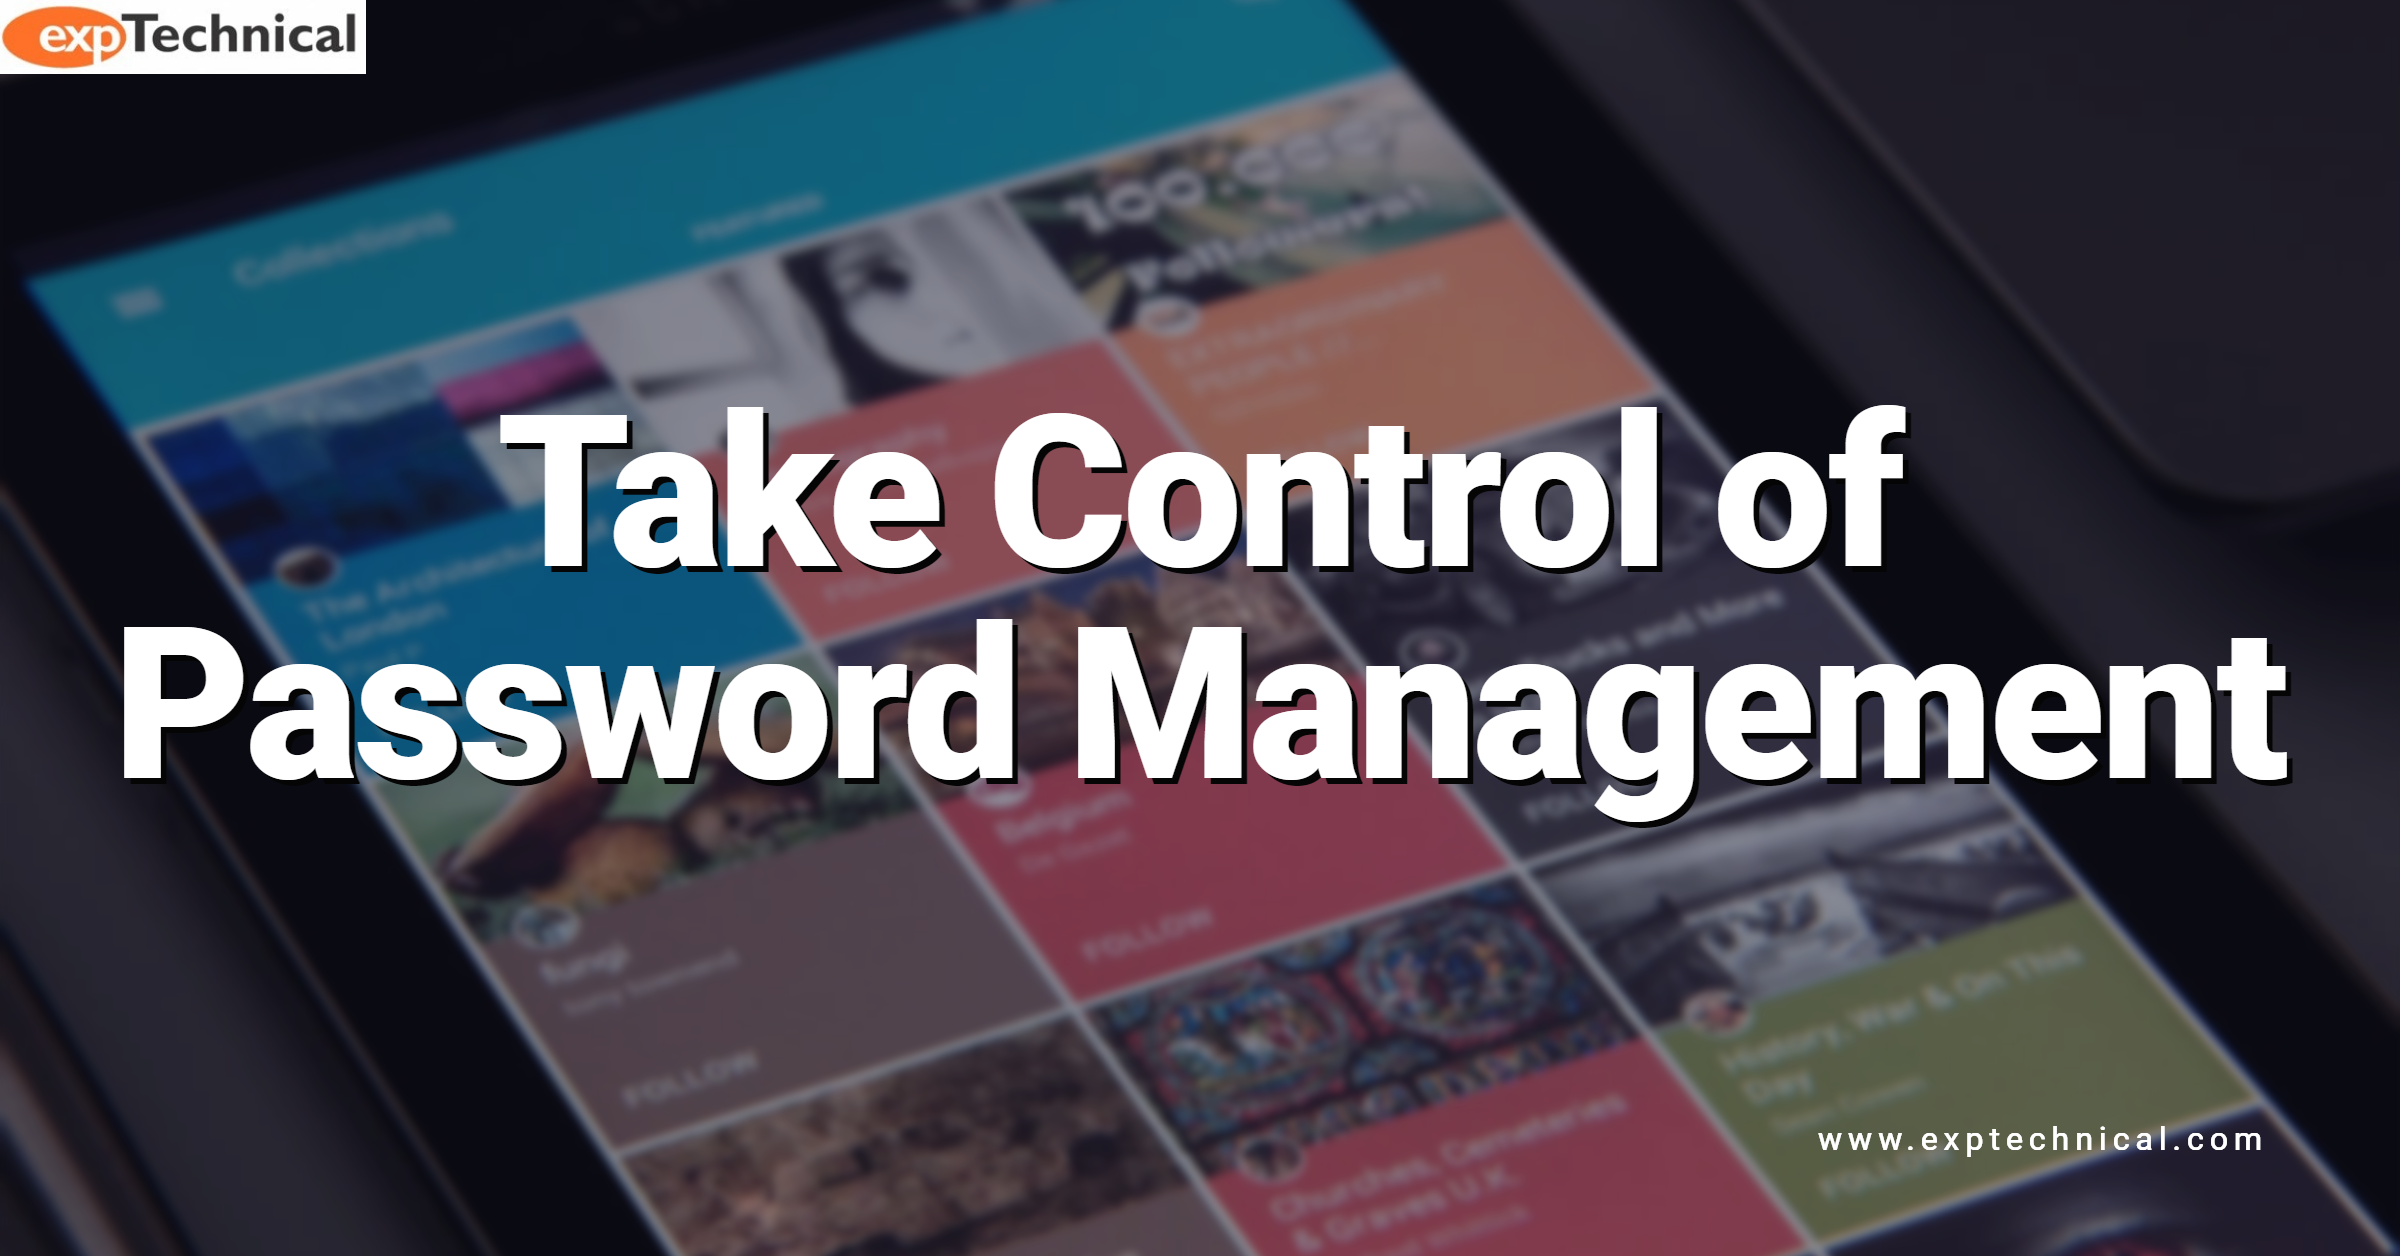 Take Control of Password Management